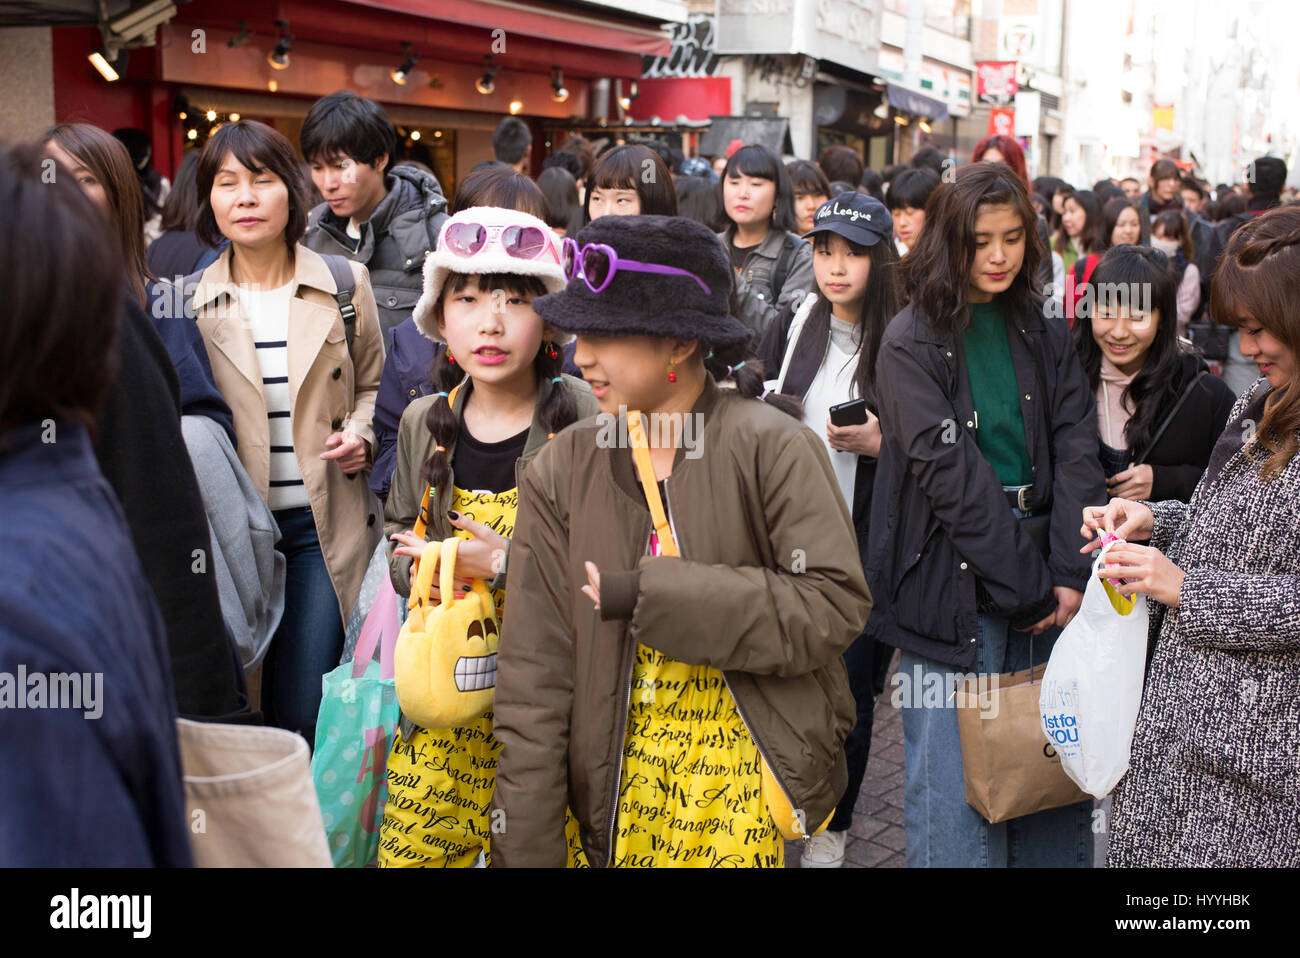 Takeshita Street in Harajuku, Tokyo is a popular area for fashion and youth culture - Stock Image